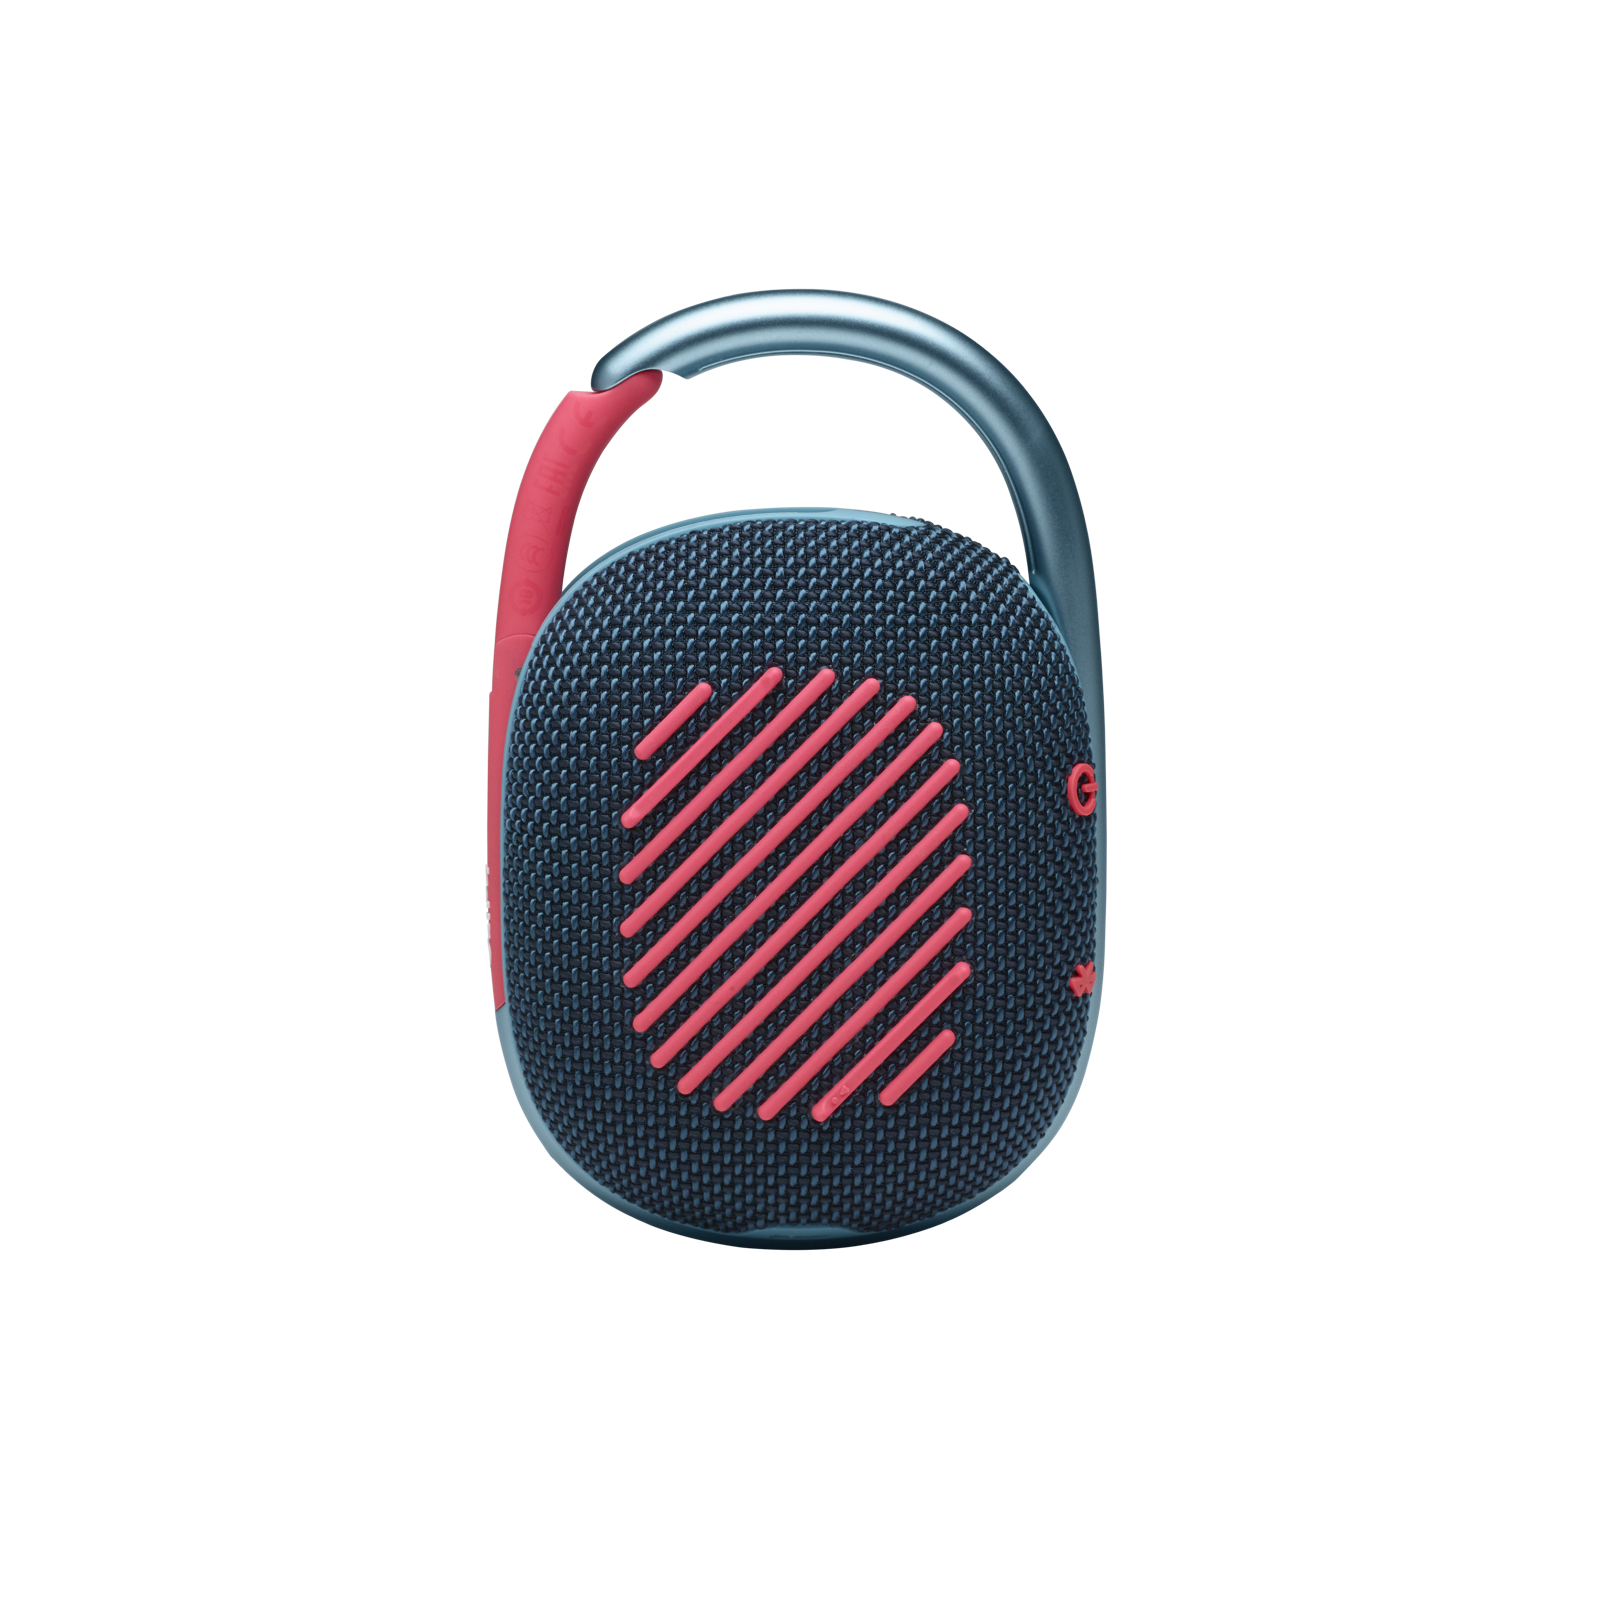 JBL CLIP 4 - Blue / Pink - Ultra-portable Waterproof Speaker - Back